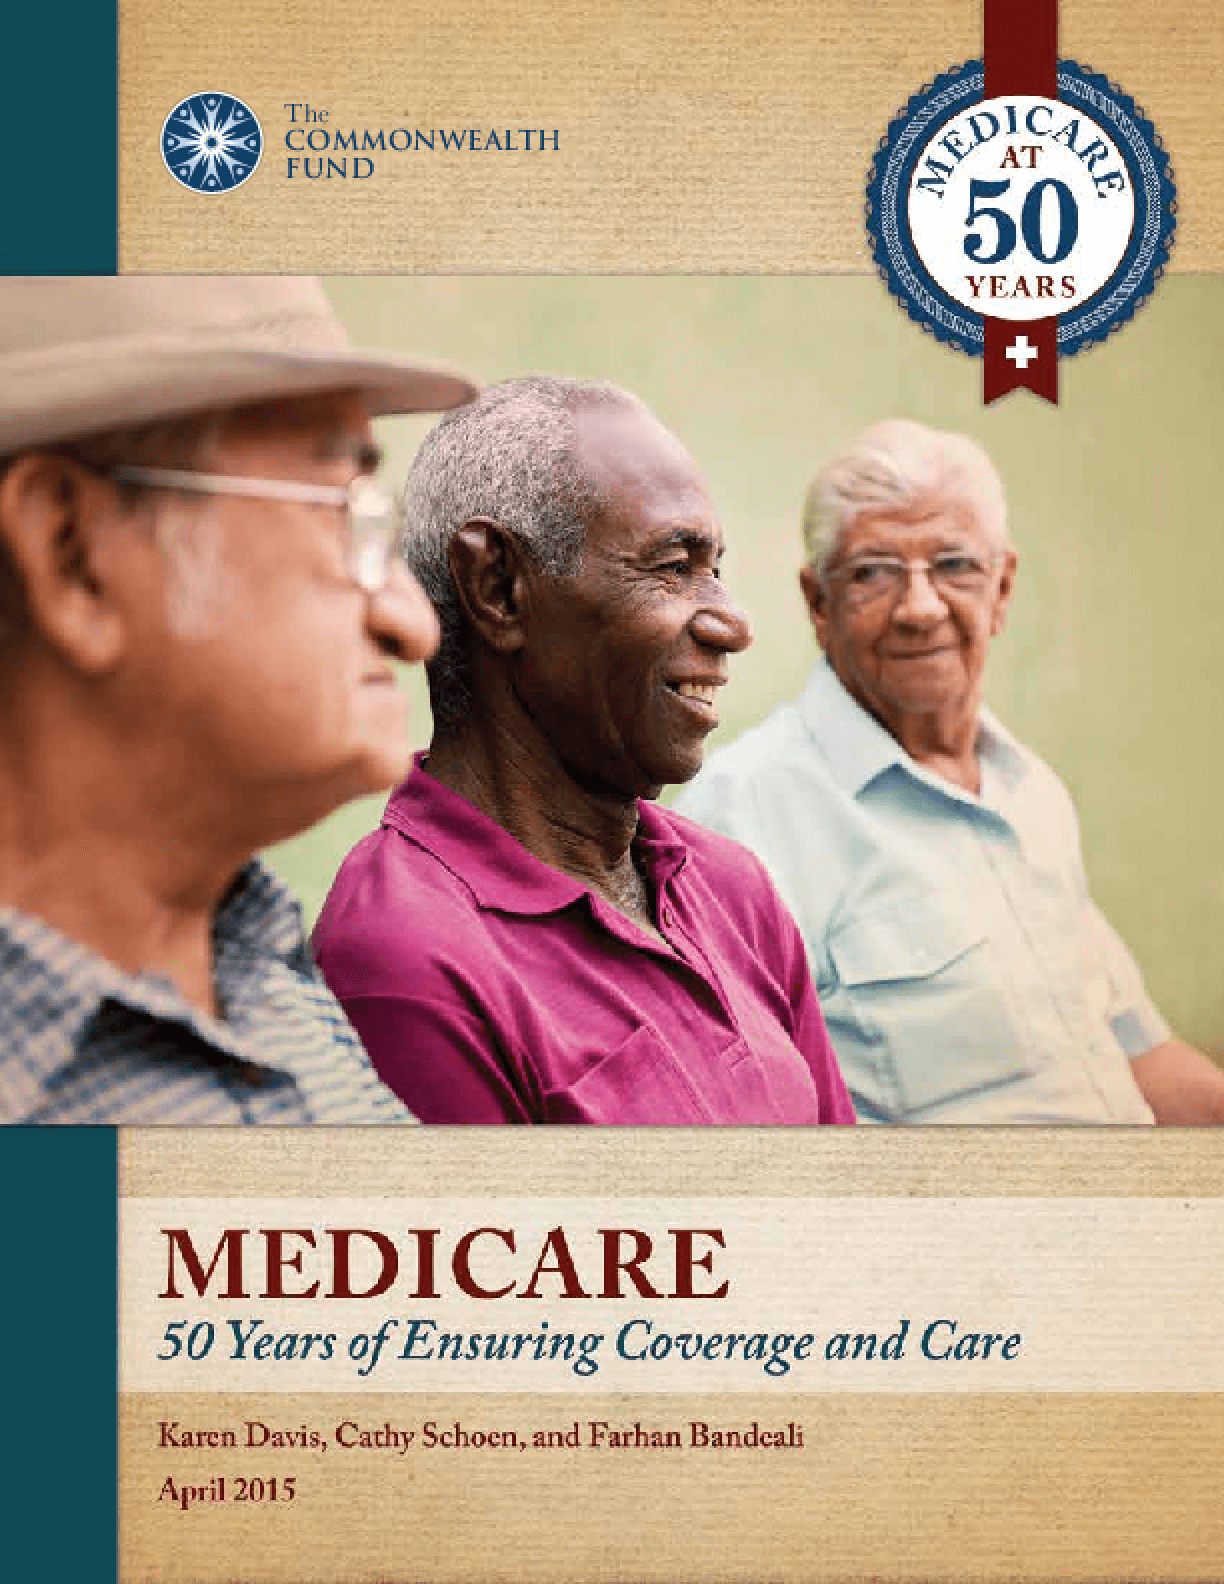 Medicare: 50 Years of Ensuring Coverage and Care